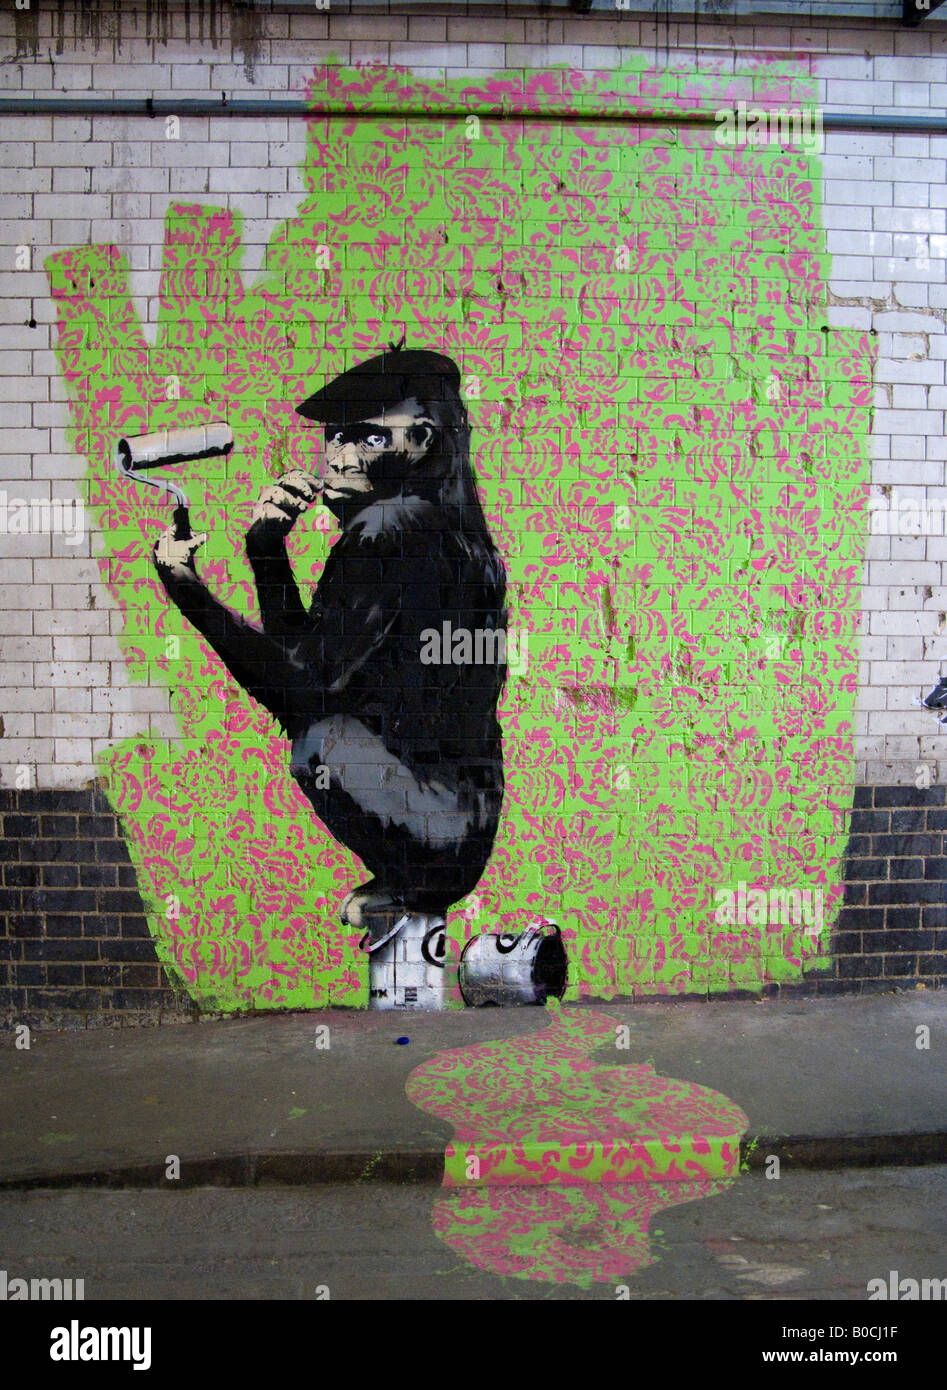 monkey ape paints wallpaper graffiti with paint roller image monkey ape paints wallpaper graffiti with paint roller image from the cans festival london that